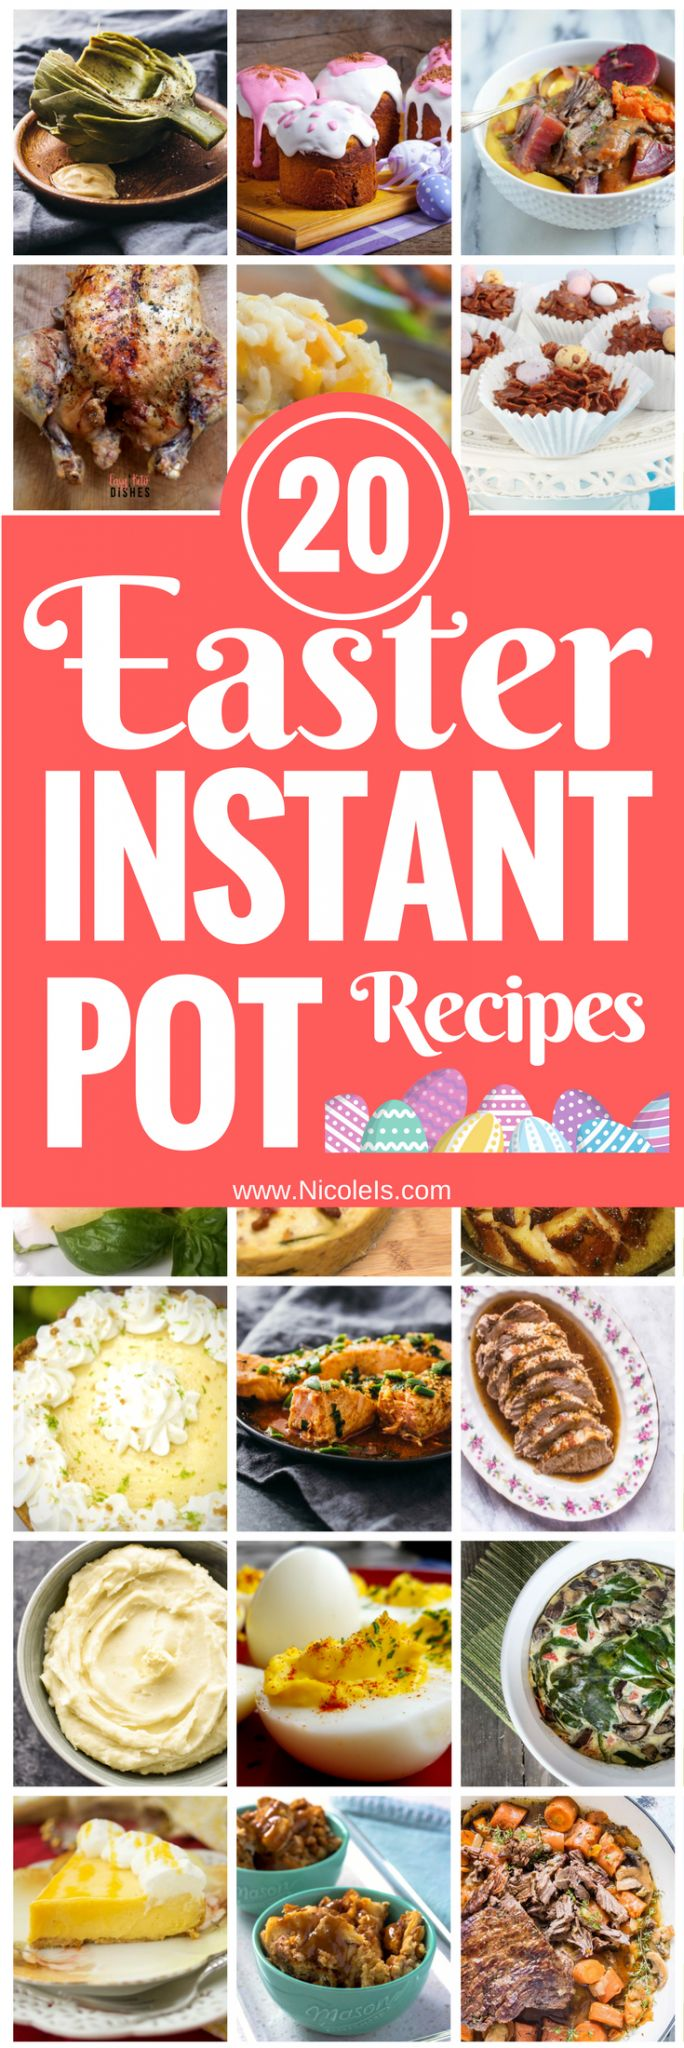 20 Incredible Easter Instant Pot Recipes! www.NicoleIs.com Easter Recipes | Instant Pot Recipes | Appetizer Recipes | Pork Recipes | Seafood Recipes | Beef Recipes | Pot Roast Recipes | Easter Ham Recipes | Easter Desserts | Easter Side Dishes | Vegan Recipes | Vegetarian Recipes | Keto Recipes | Paleo Recipes | Gluten Free Recipes | Low Carb Recipes | Chicken Recipes | #vegetariandish